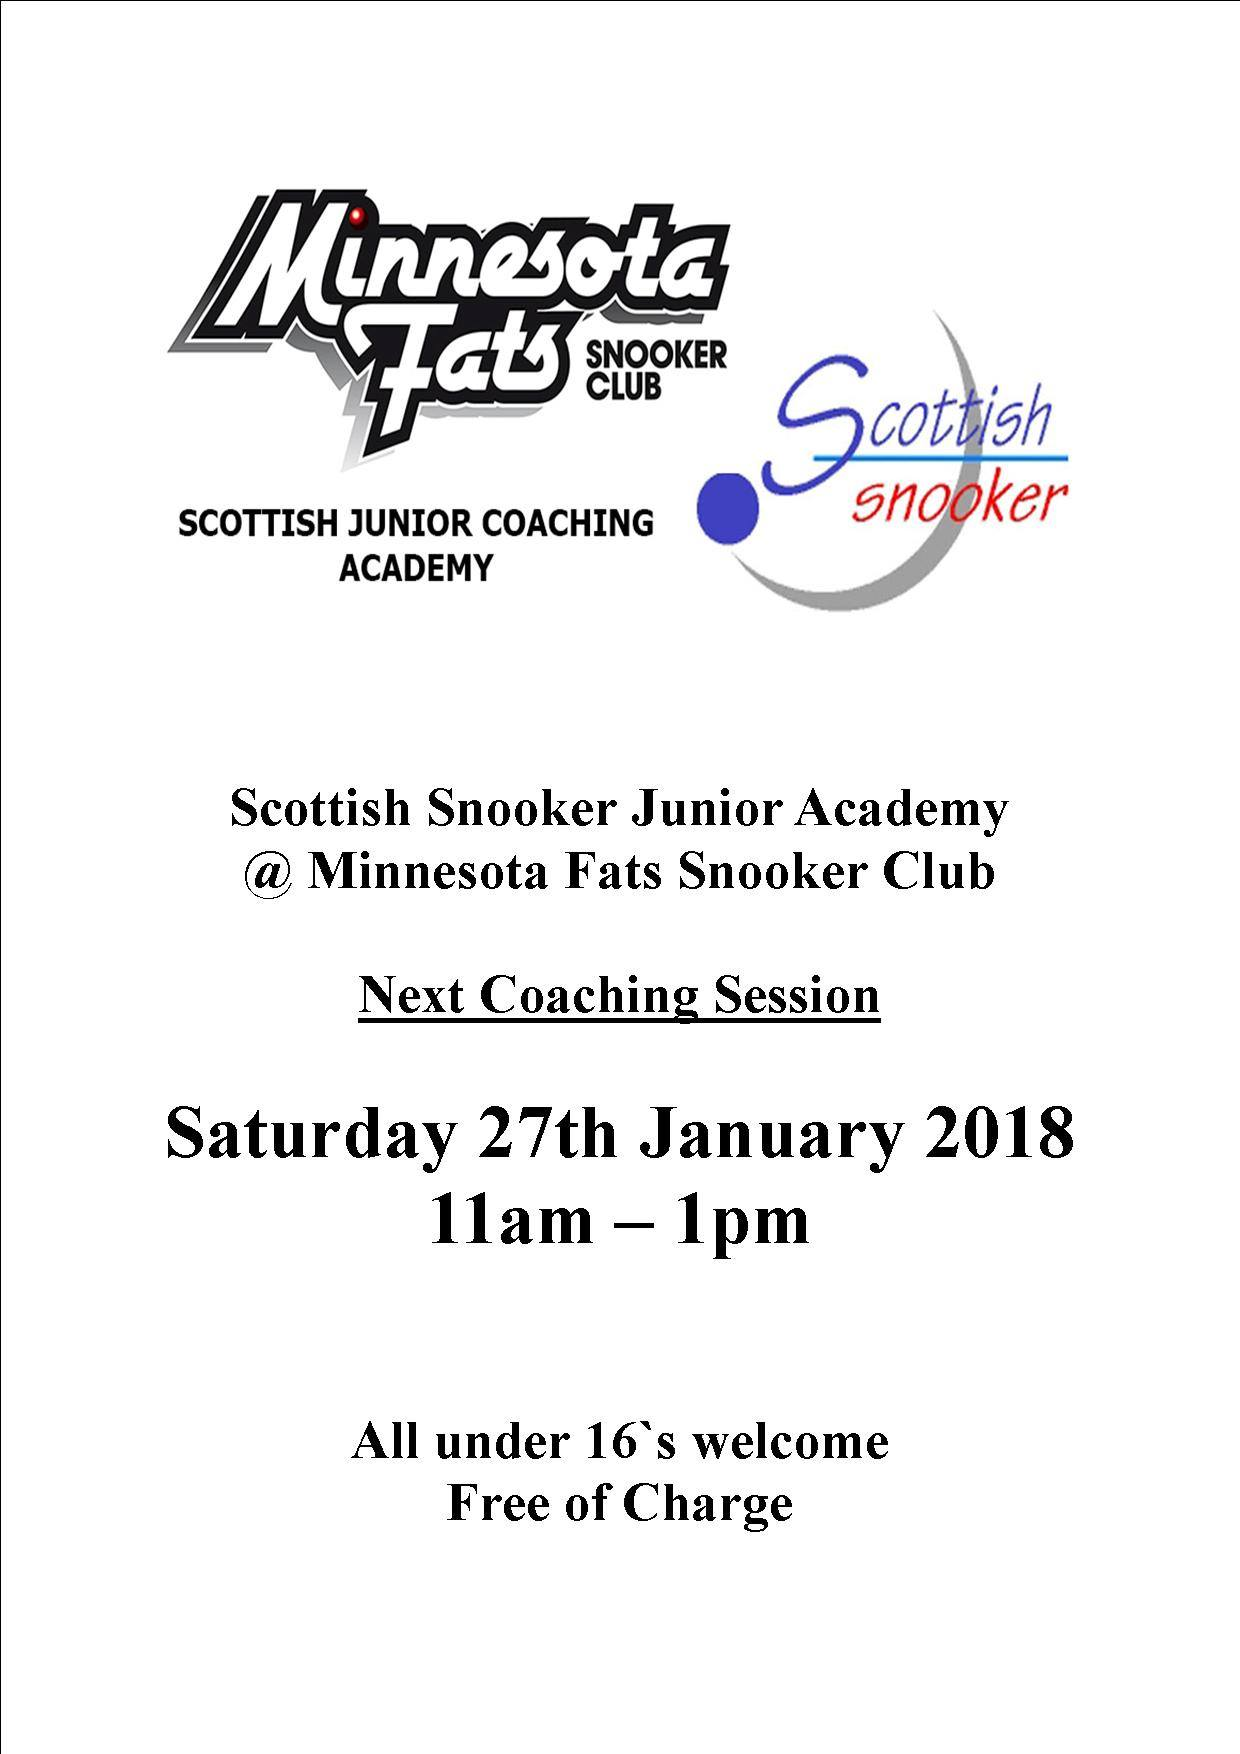 Scottish Snooker Junior Academy - Minnesota Fats Snooker Club - 27th January 2018